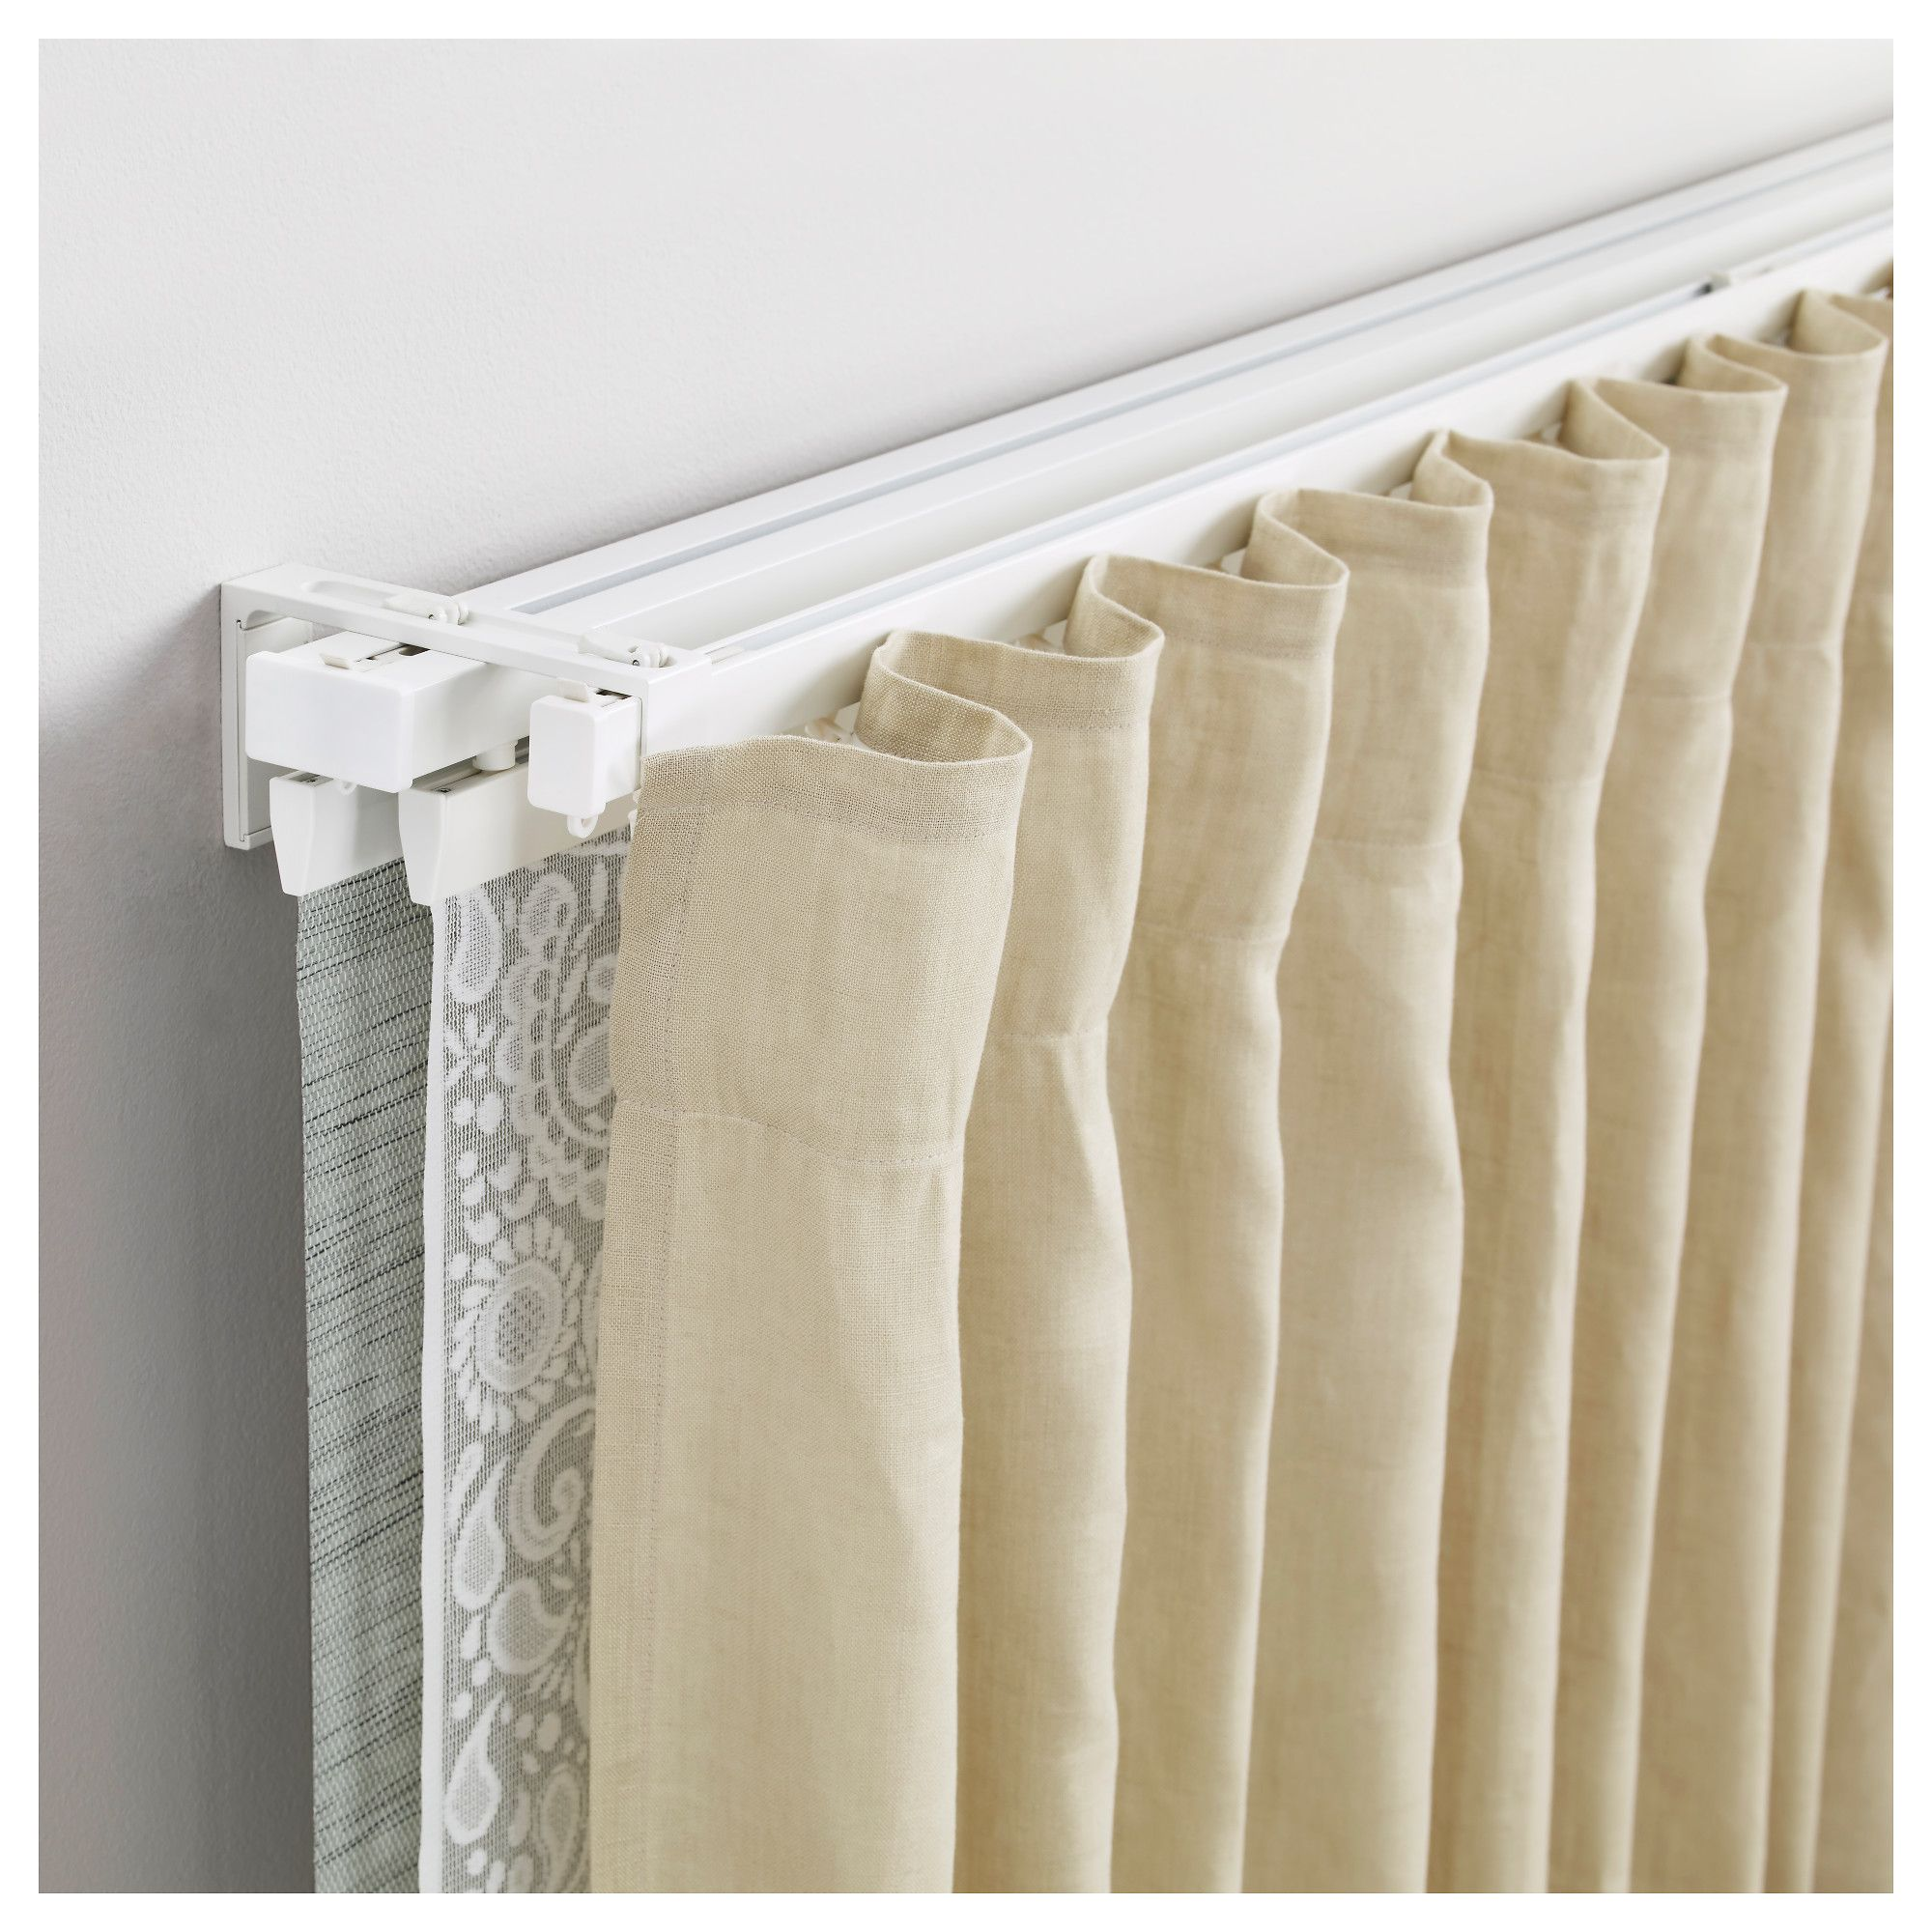 Ceiling Mount Track Curtain Rods Vidga Single And Triple Track Set White In 2019 Faxon 18